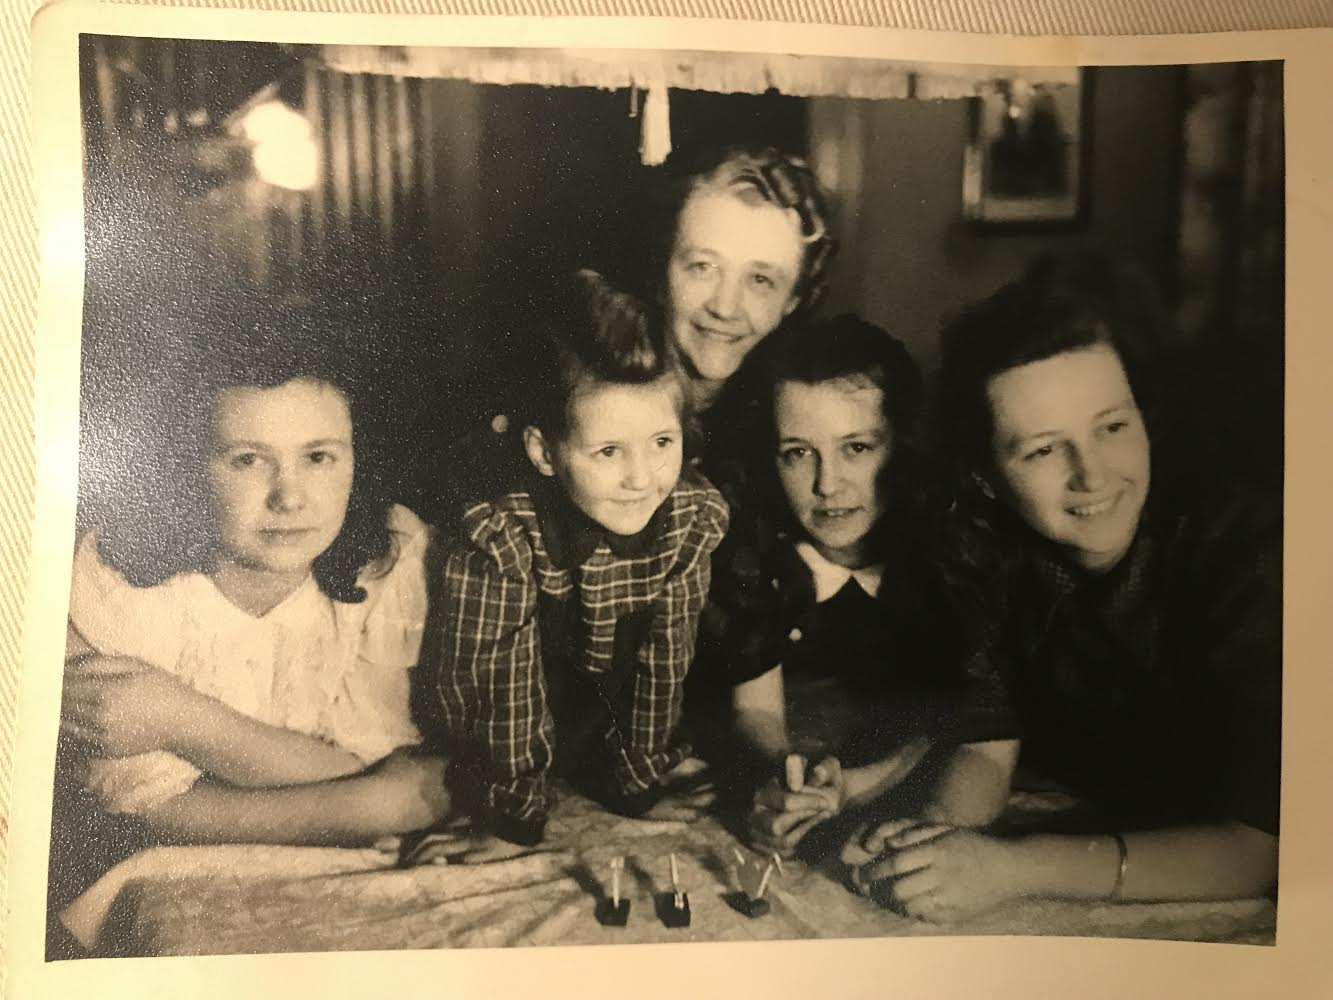 William McGowan's grandmother and three children, including his mother Ilse